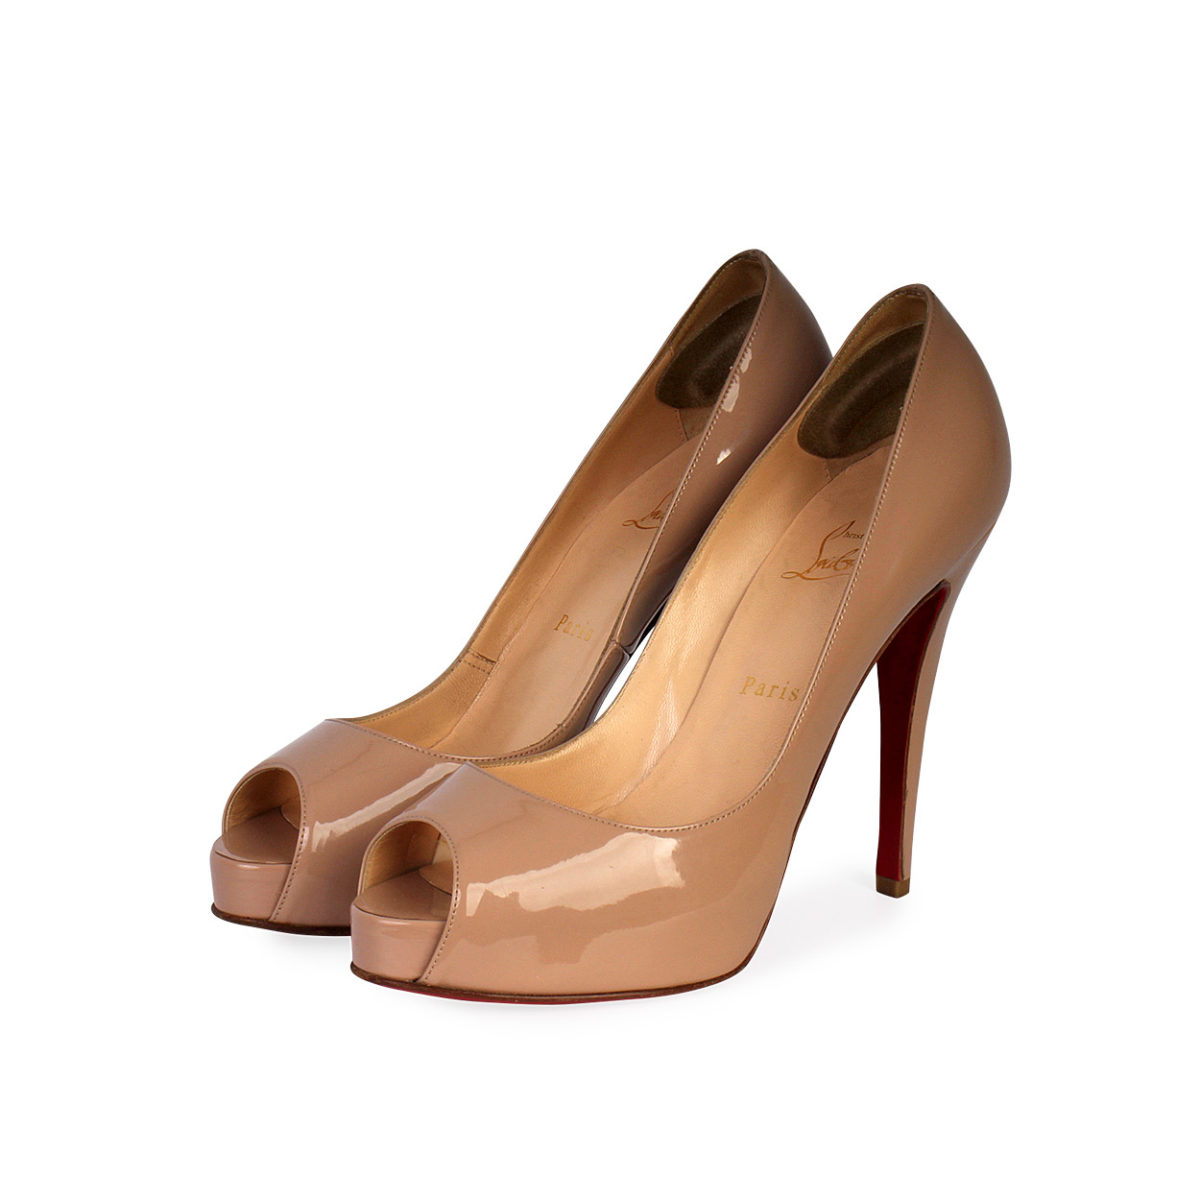 652ee8e0f83 CHRISTIAN LOUBOUTIN Patent Leather Very Prive Peep Toe Pumps Nude - S: 39  (6)